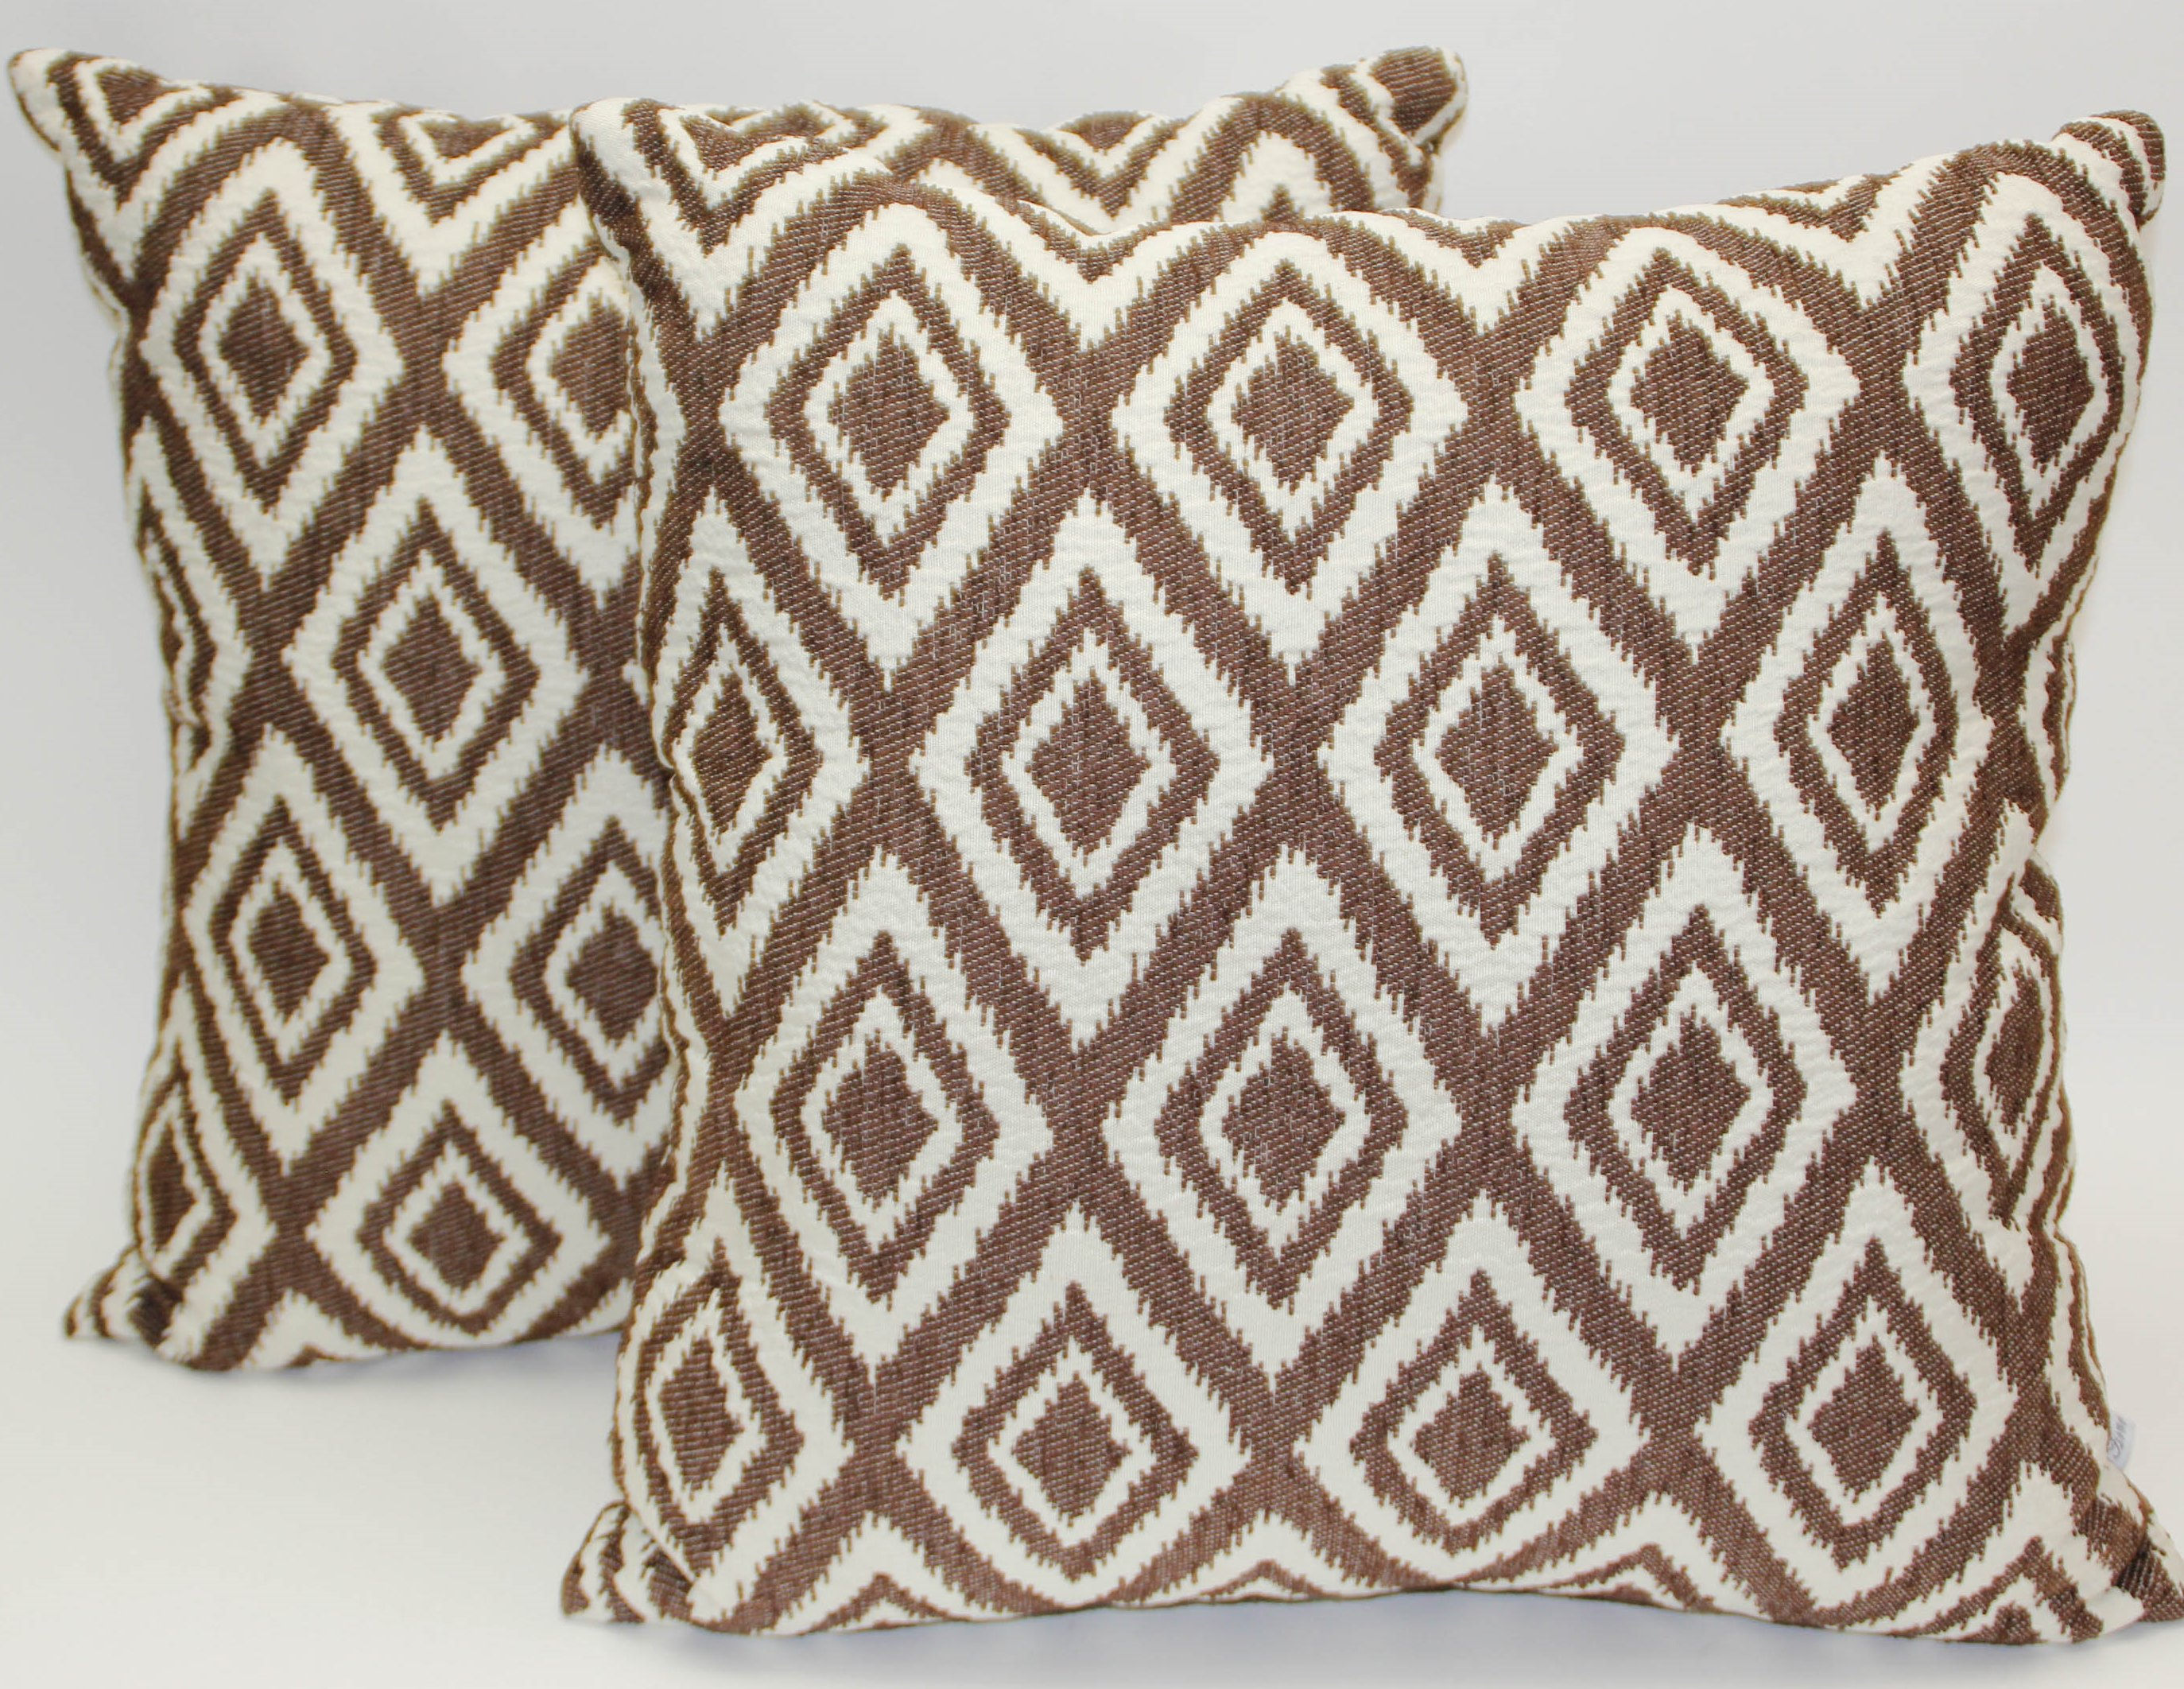 Studio Chic Decorative Pillows 2 Pack